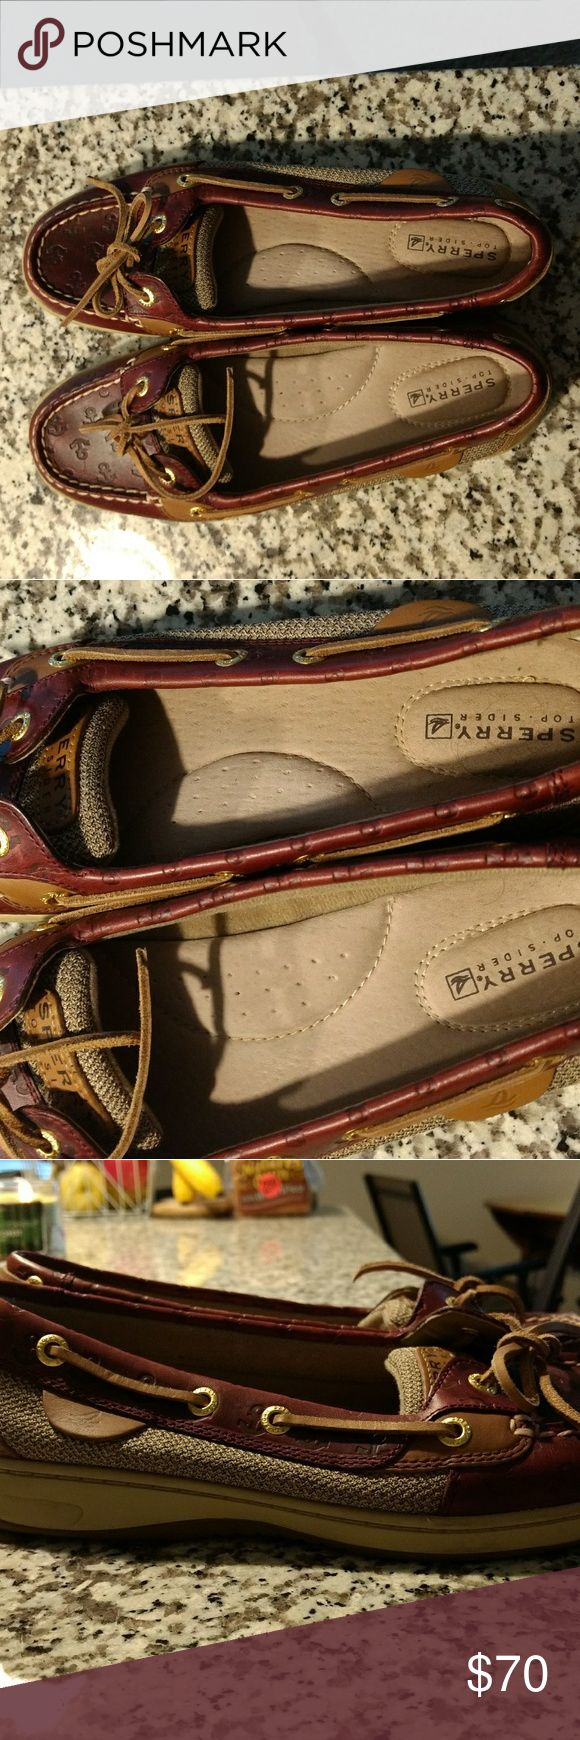 SALE Anchor Sperry Boat Shoes Adorable boat shoes with anchors imprinted on them!! Excellent quality, only worn twice. Classic Sperry look.   Size 8M Sperry Shoes Flats & Loafers